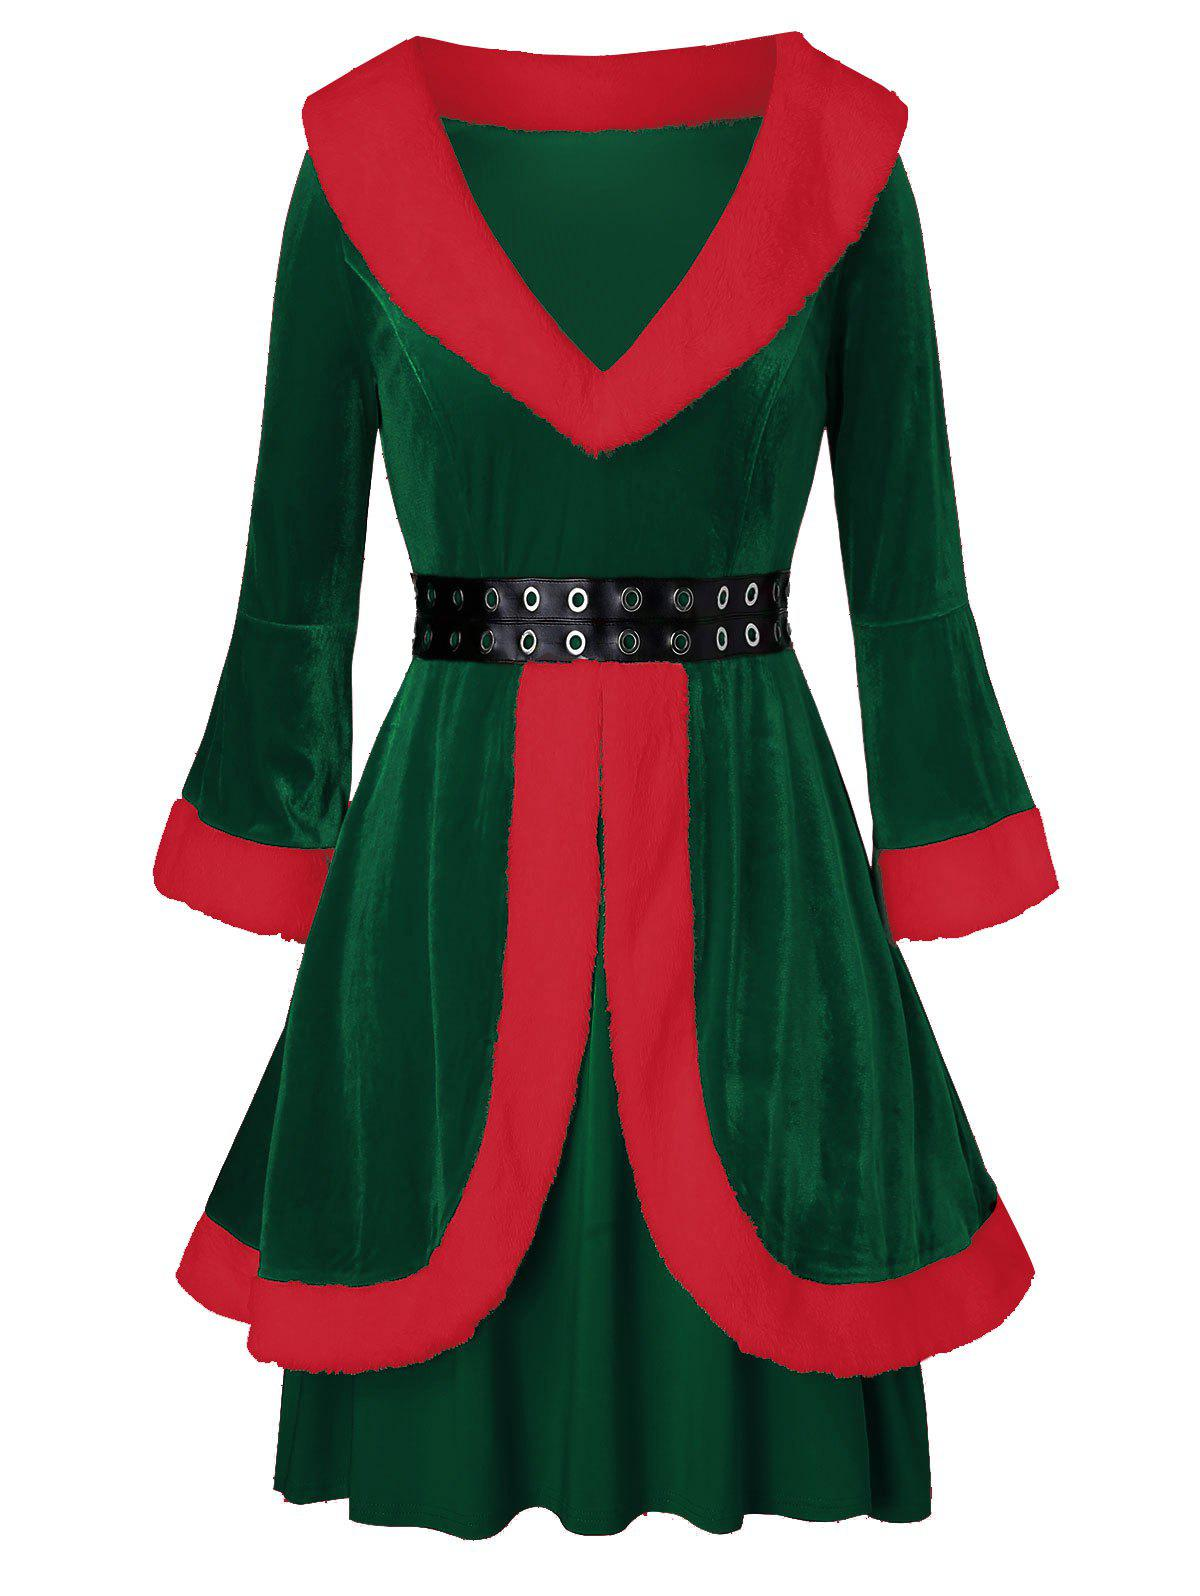 Plus Size Faux Fur Grommets Velvet Christmas Dress - MEDIUM FOREST GREEN 2X